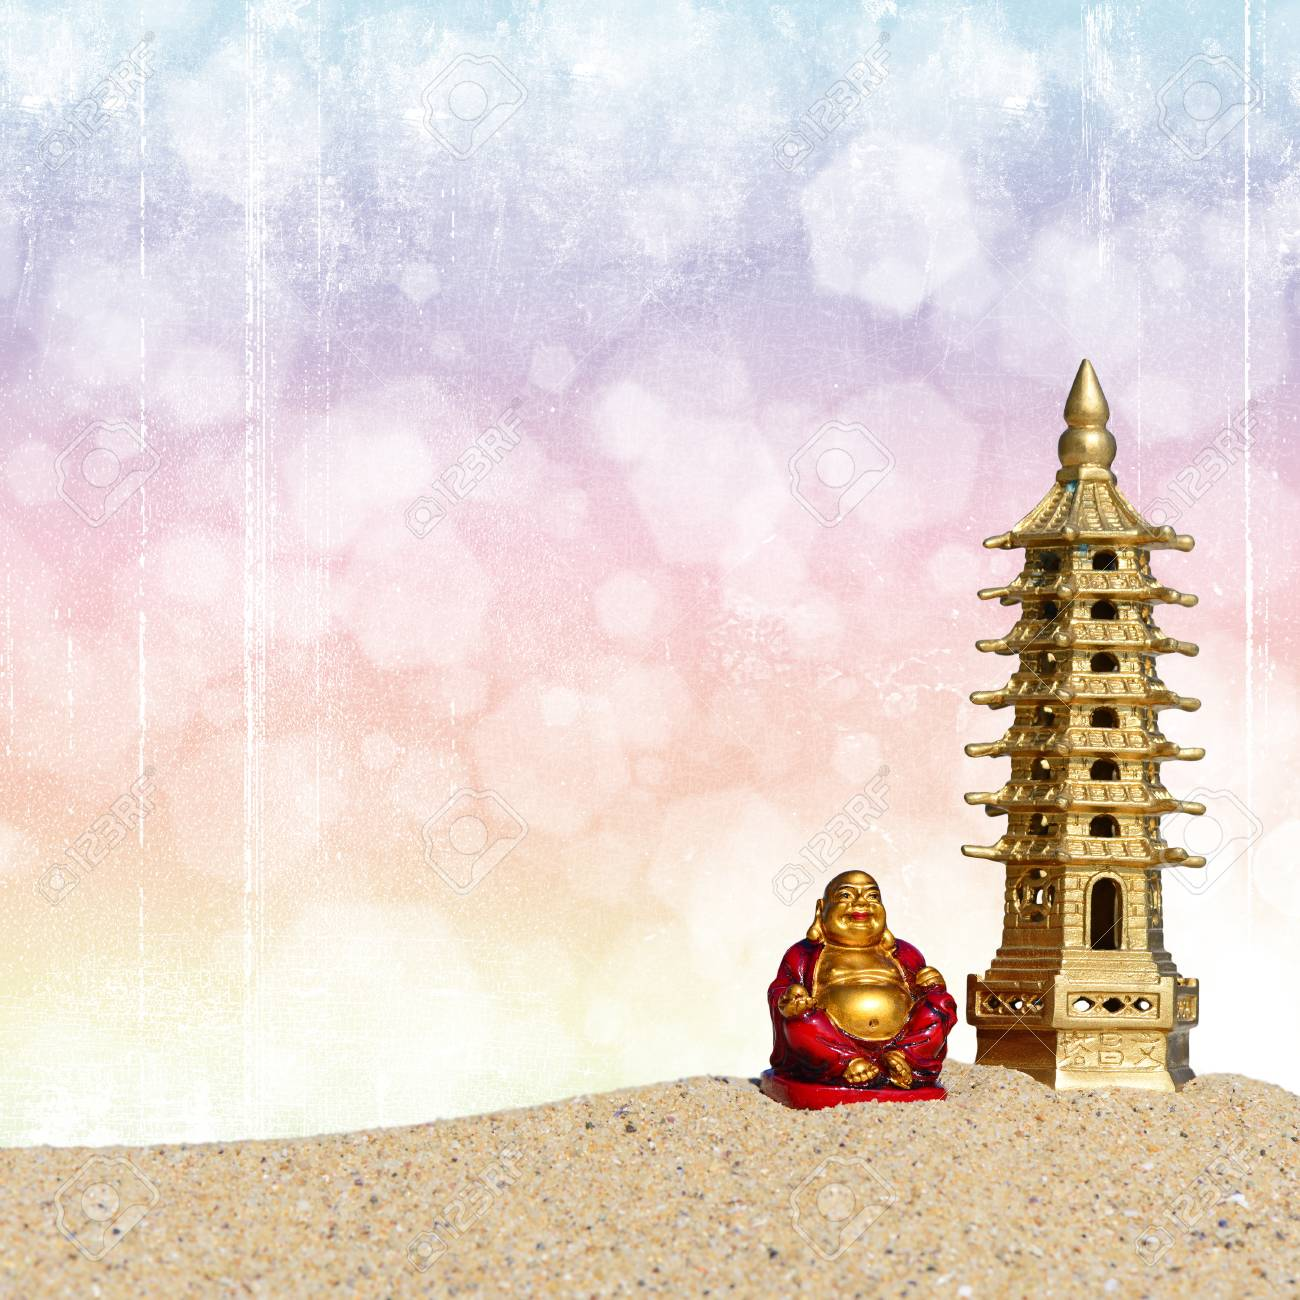 Laughing Buddha And Seven Storied Pagoda In The Sand Symbol Stock